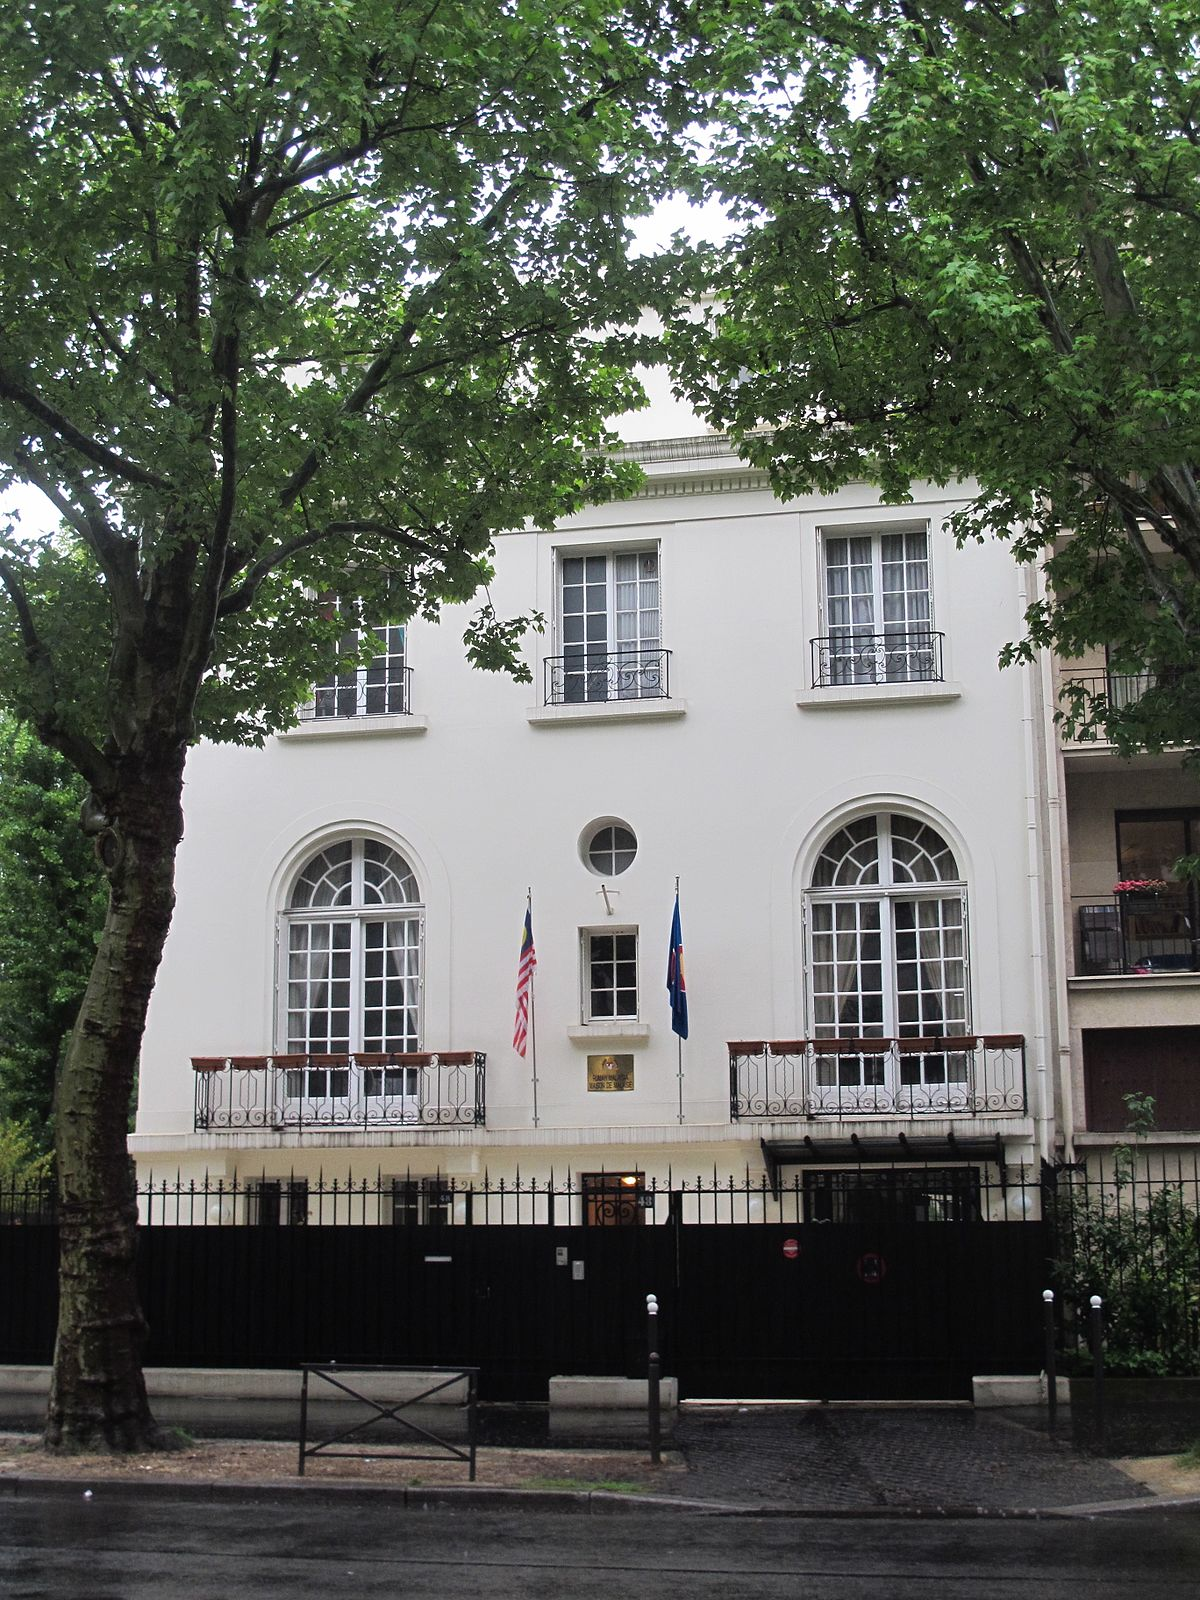 Embassy of malaysia paris wikidata for Acheter maison paris 16